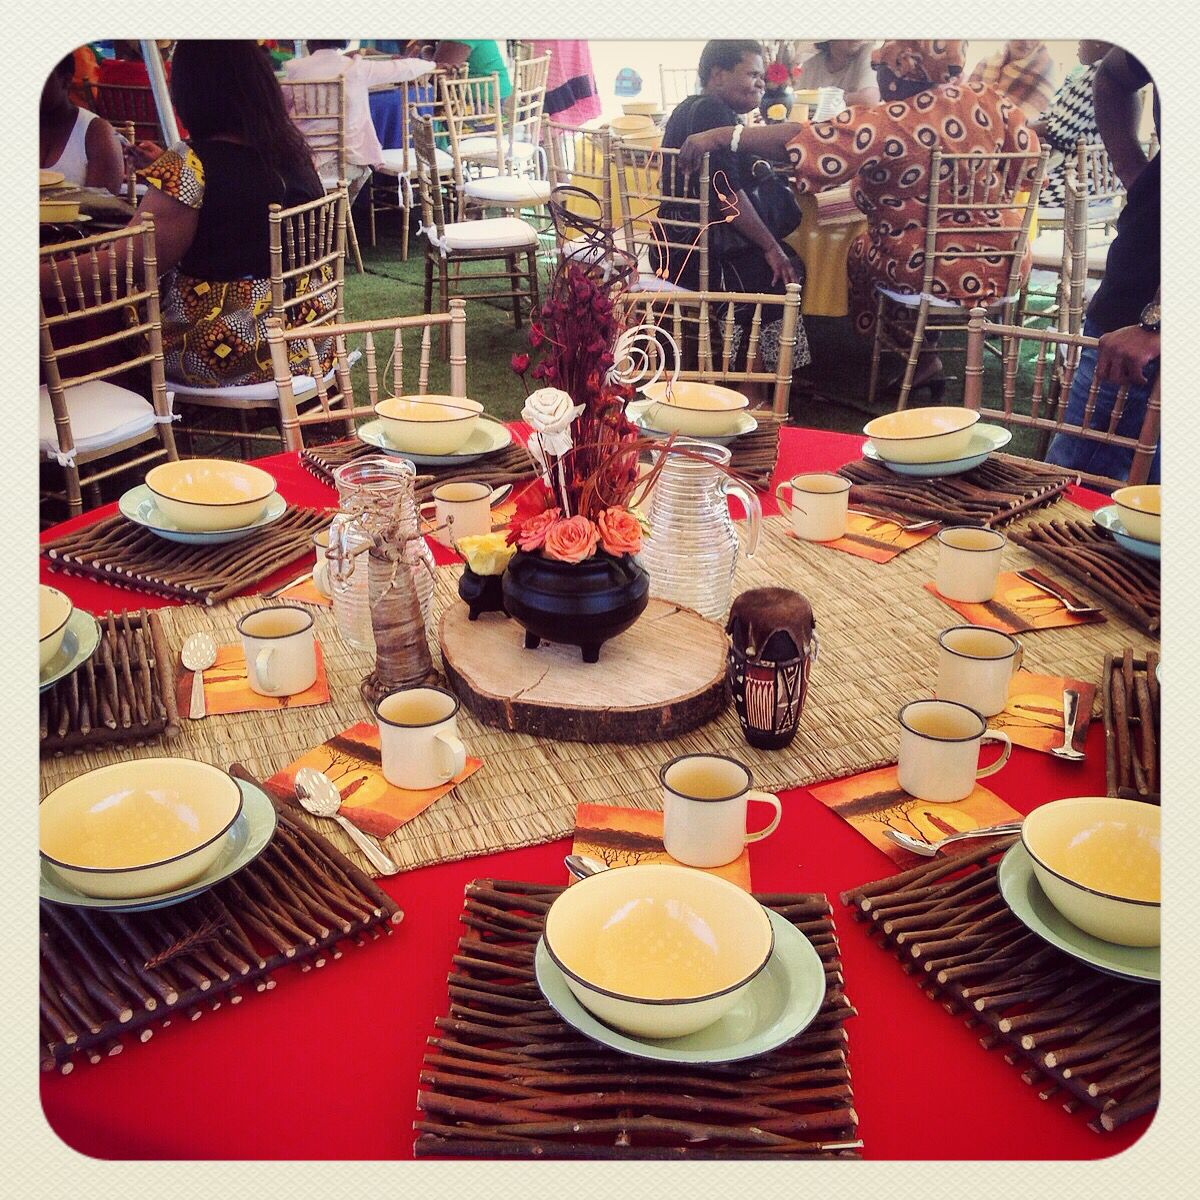 Nigerian traditional wedding decor ideas  Traditional African wedding centerpieces and decor facebook